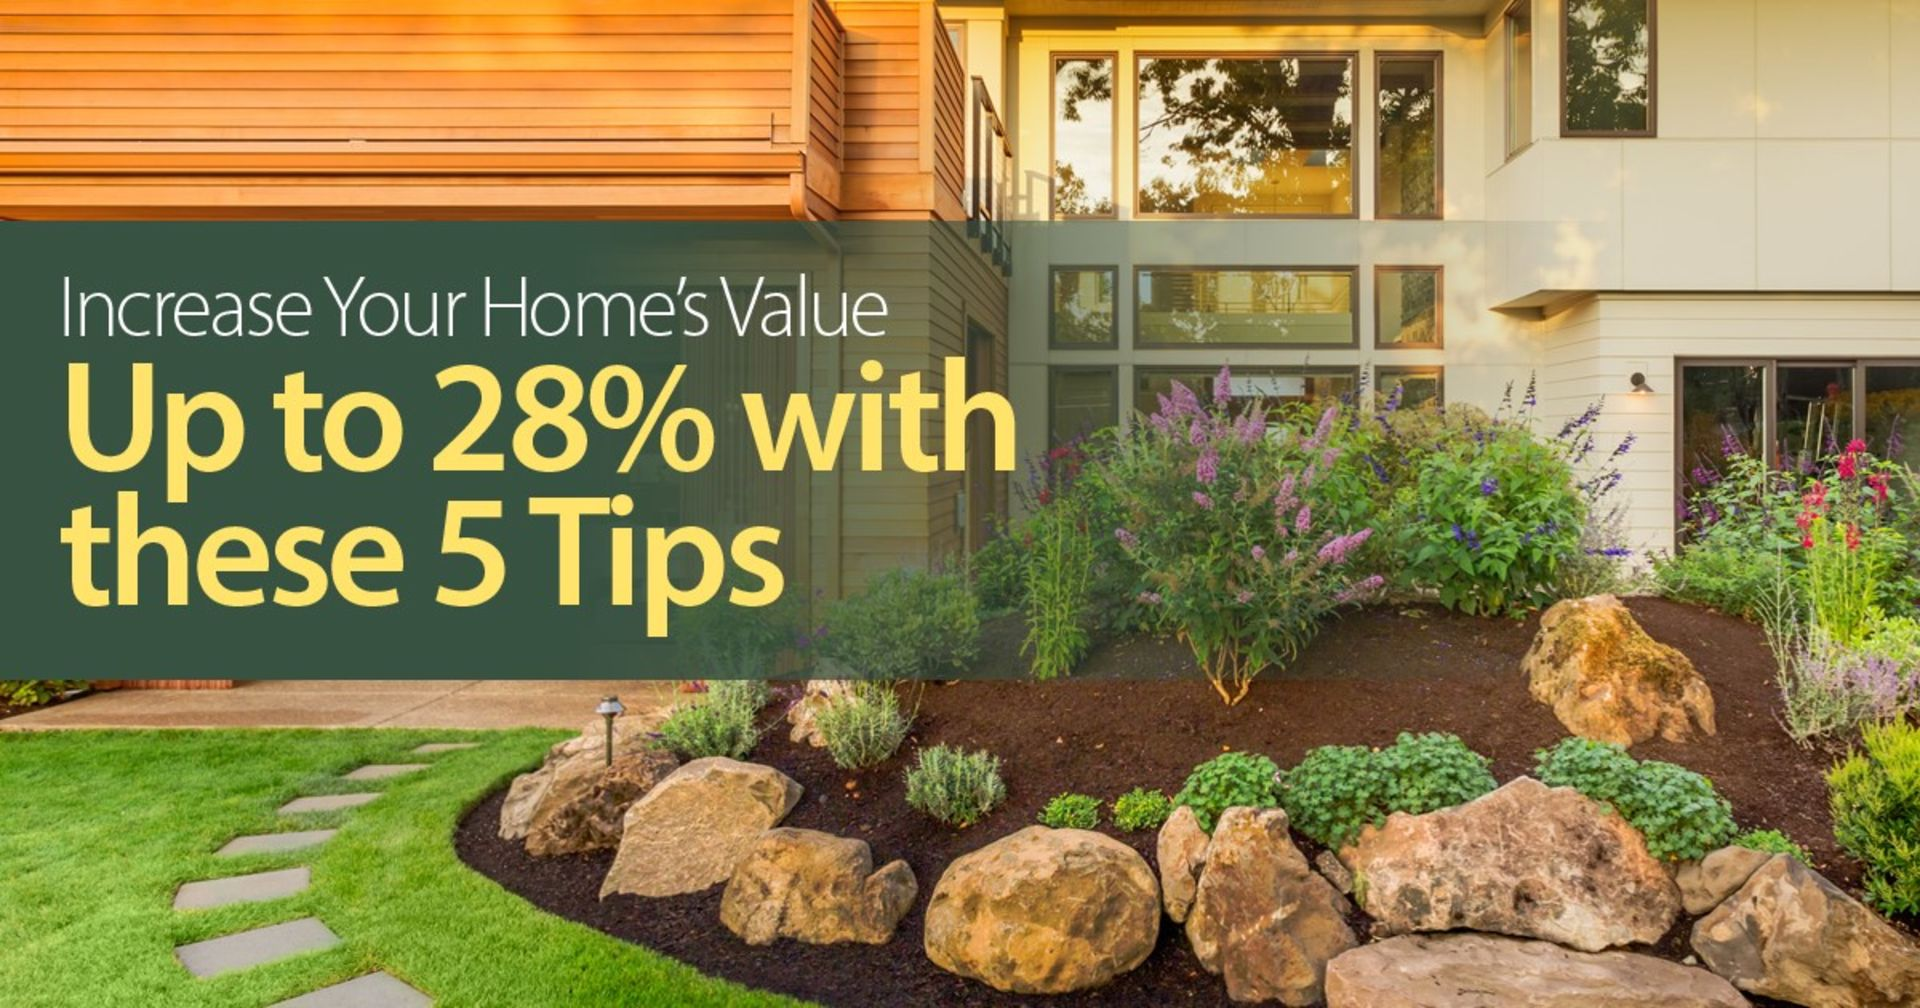 Increase Your Home's Value Up to 28% with These 5 Tips